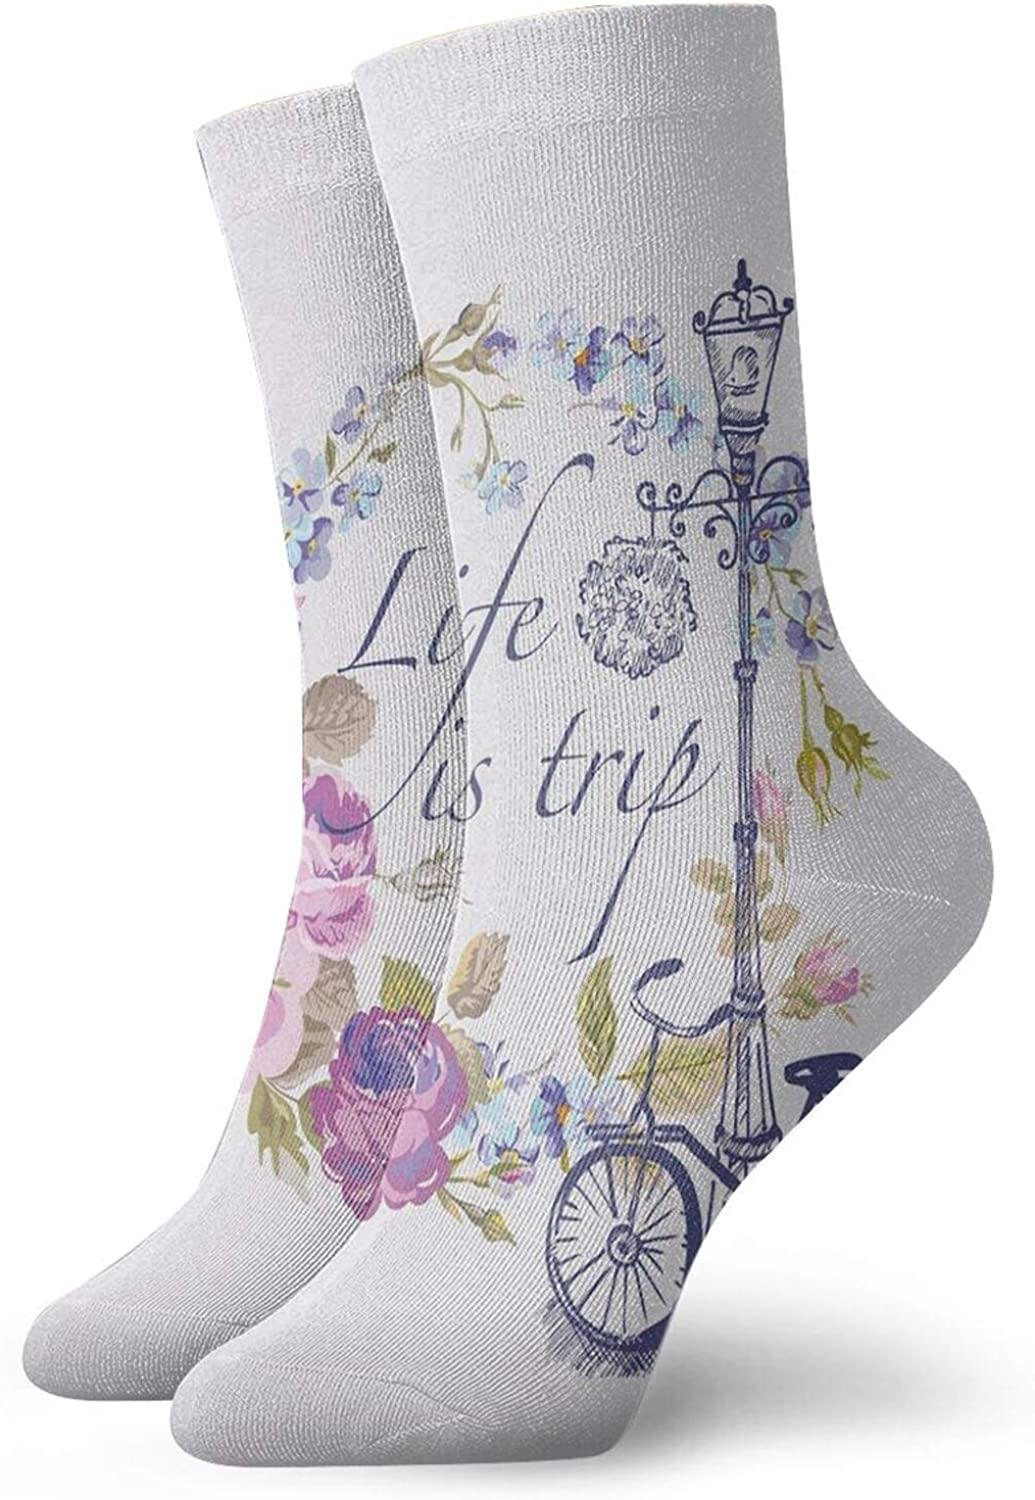 Compression High Socks-Life Is A Trip Inspirational Quote Romantic Floral Wreath And Retro Bicycle Best for Running,Athletic,Hiking,Travel,Flight